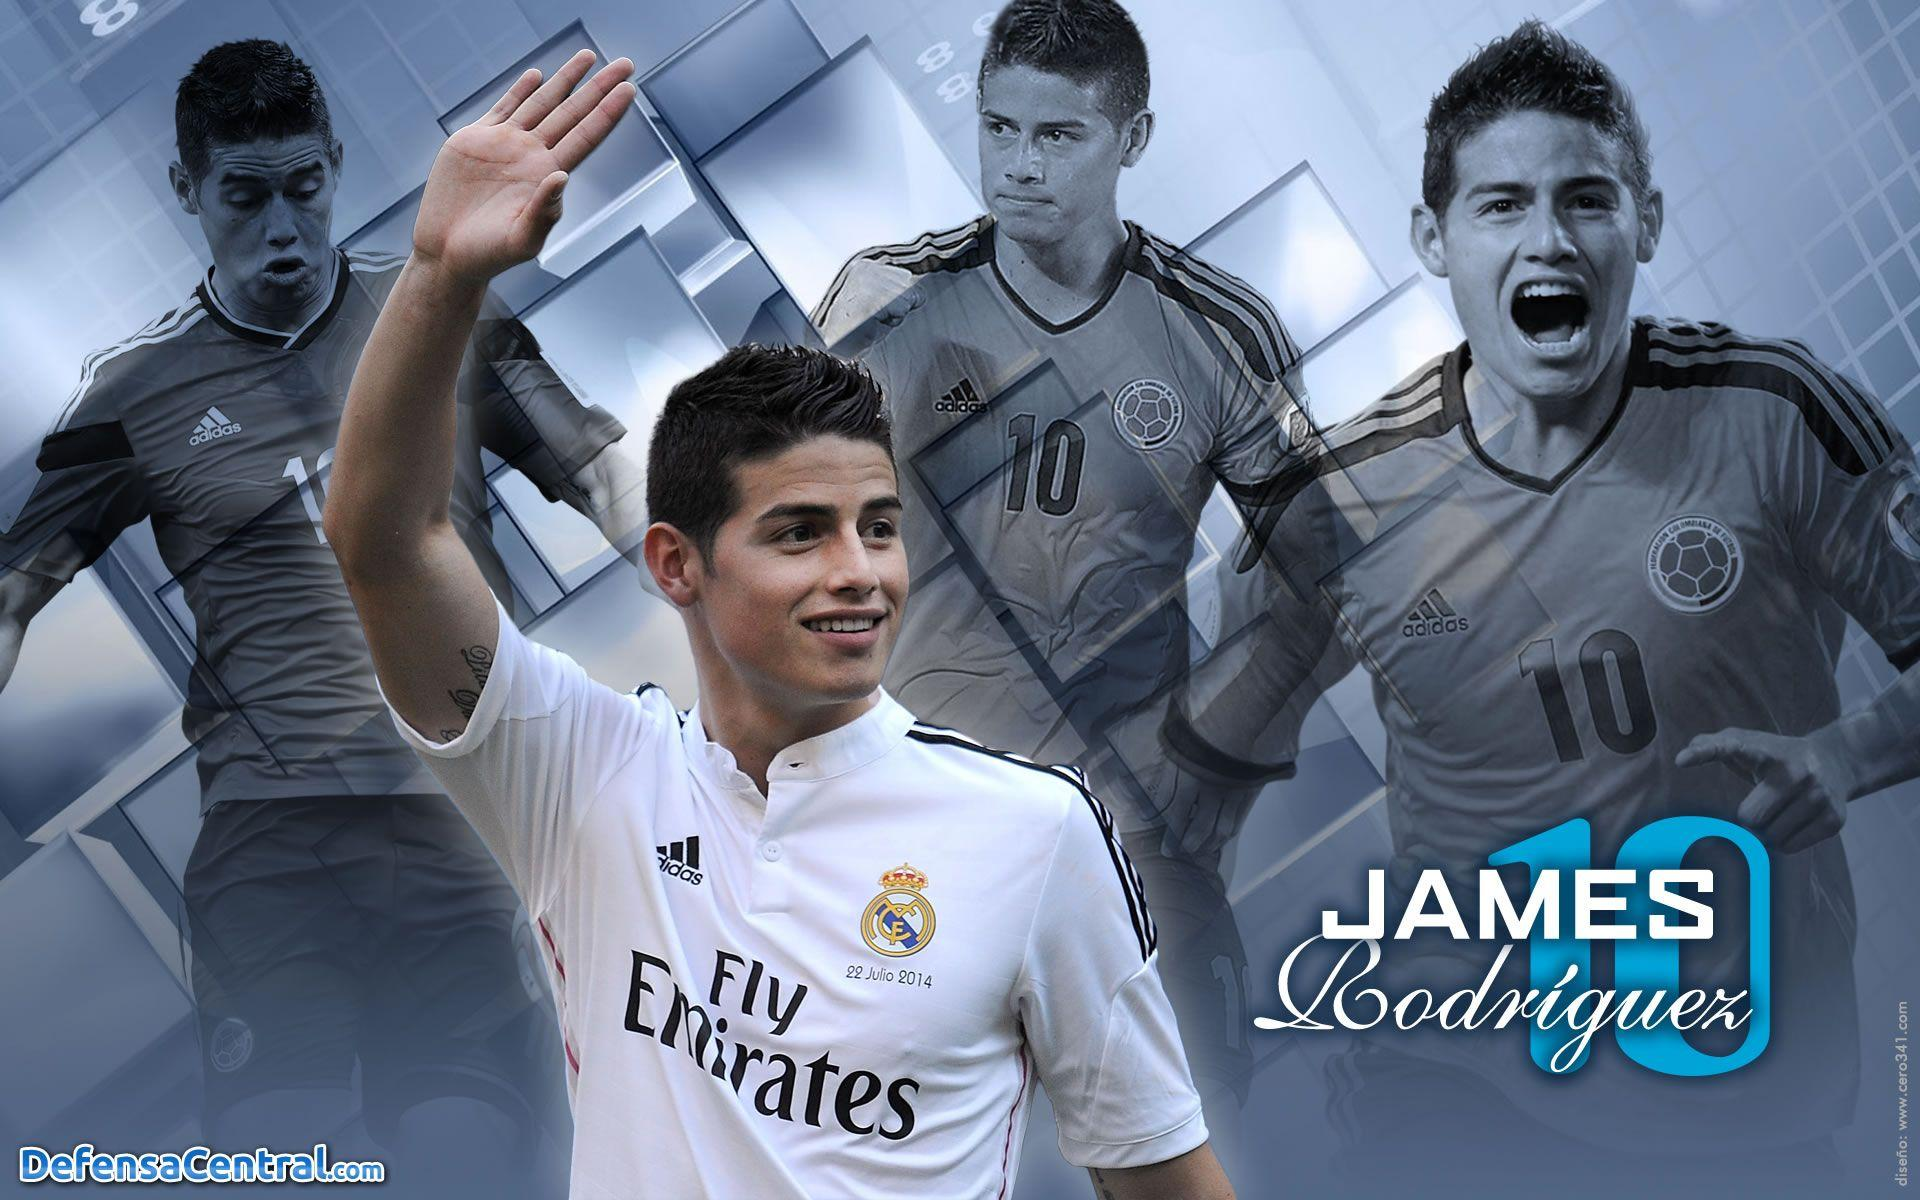 Real madrid wallpapers full hd 2015 wallpaper cave - James rodriguez wallpaper hd ...